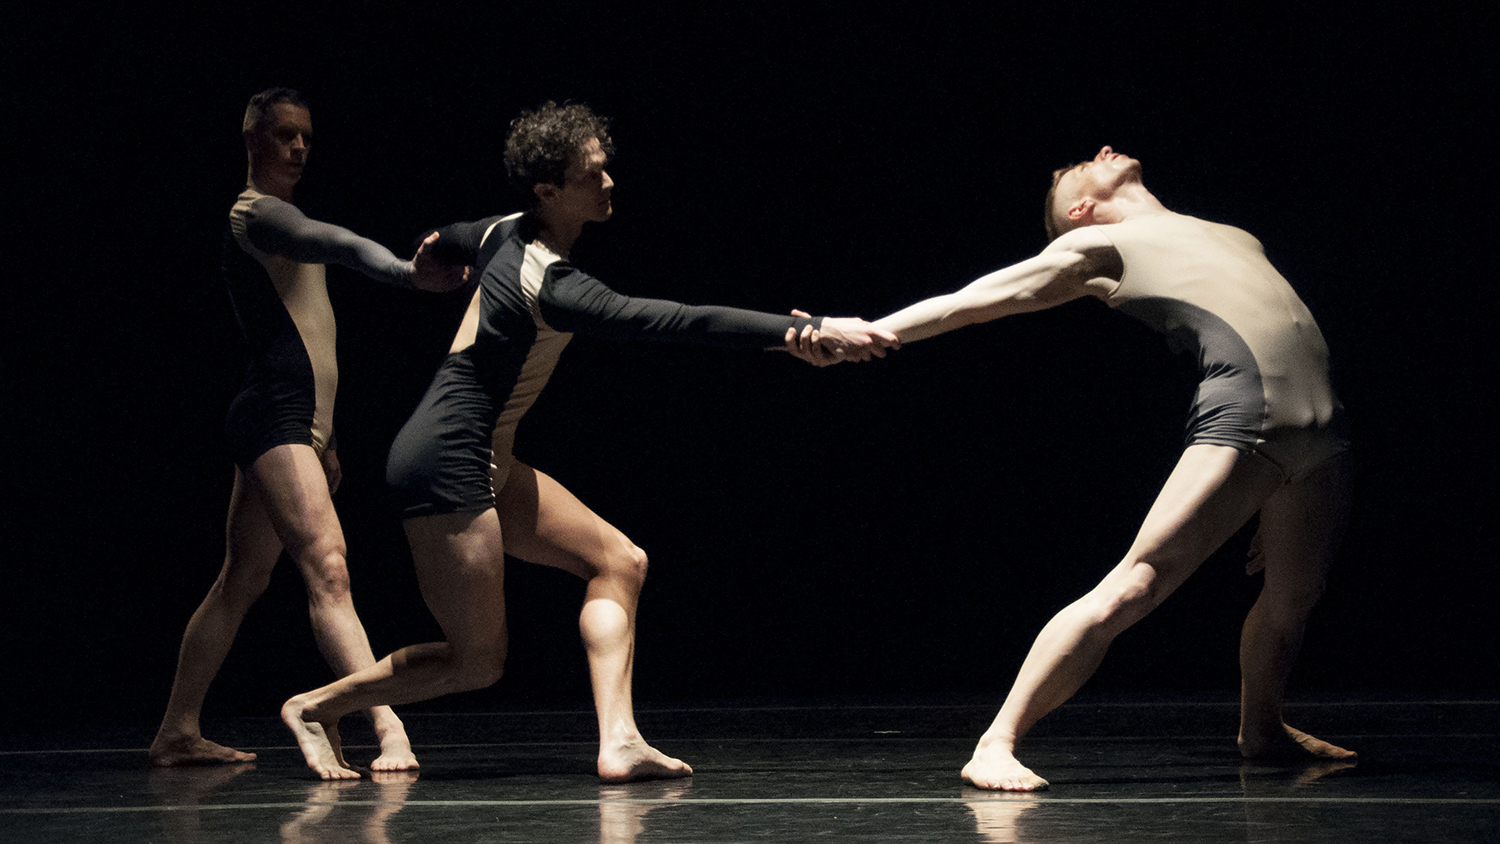 Check out these shots of the Stephen Petronio Company